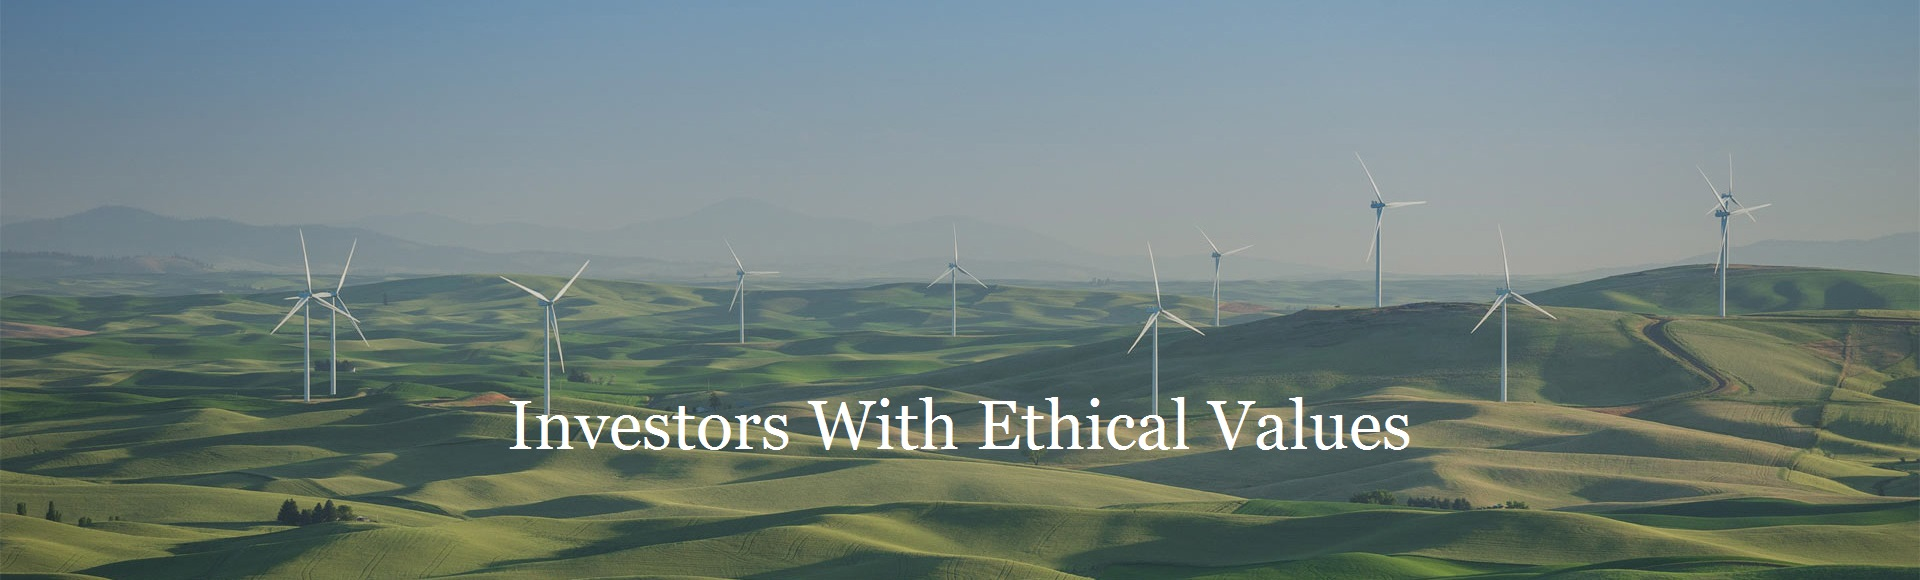 Ethical_investment_investorsethicalvalues